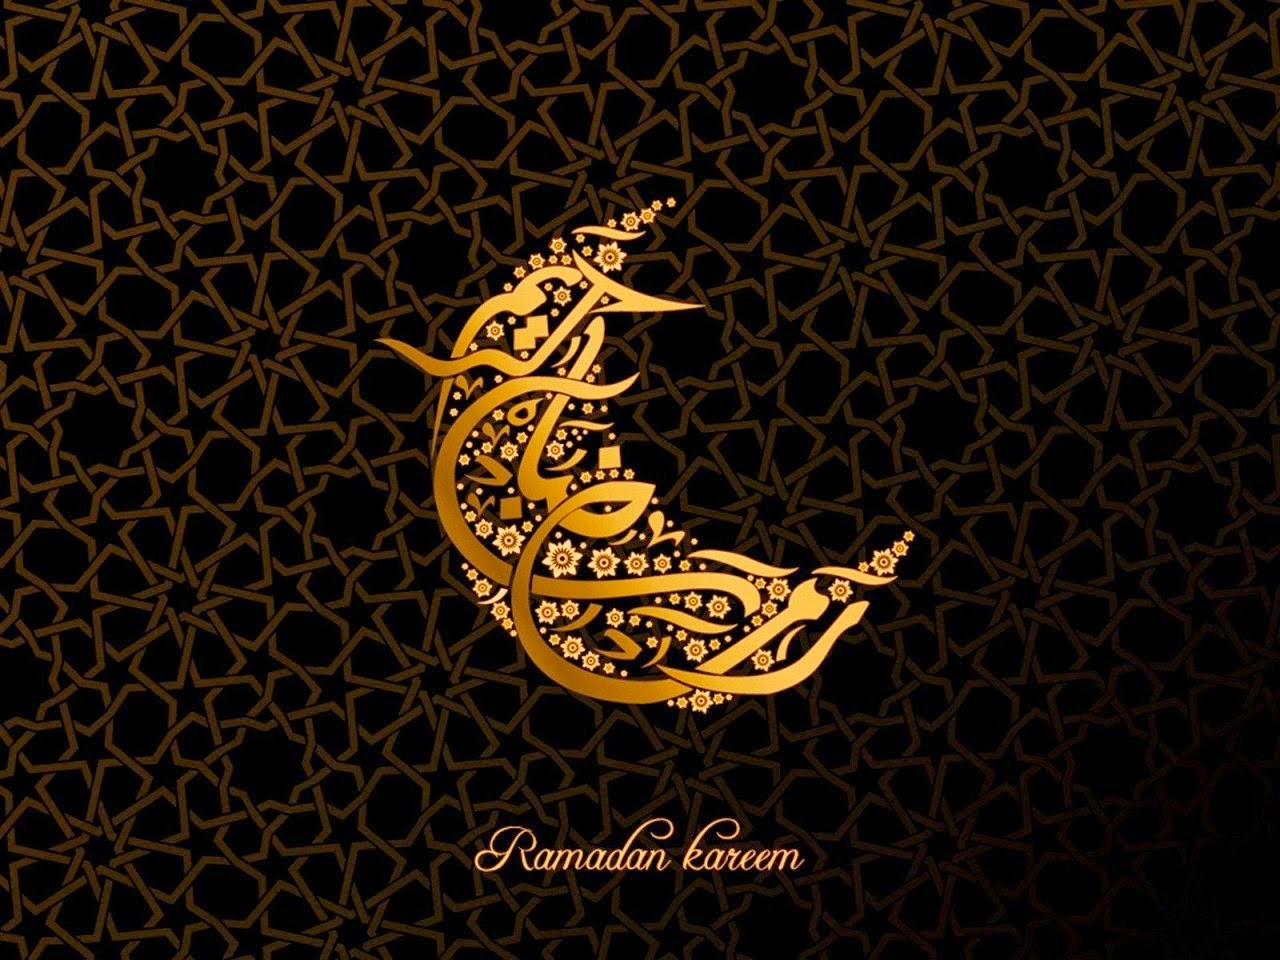 http://www.holiwallpaper2014.com/2014/06/ramadan-wallpaper-2014-facebook-cover.html